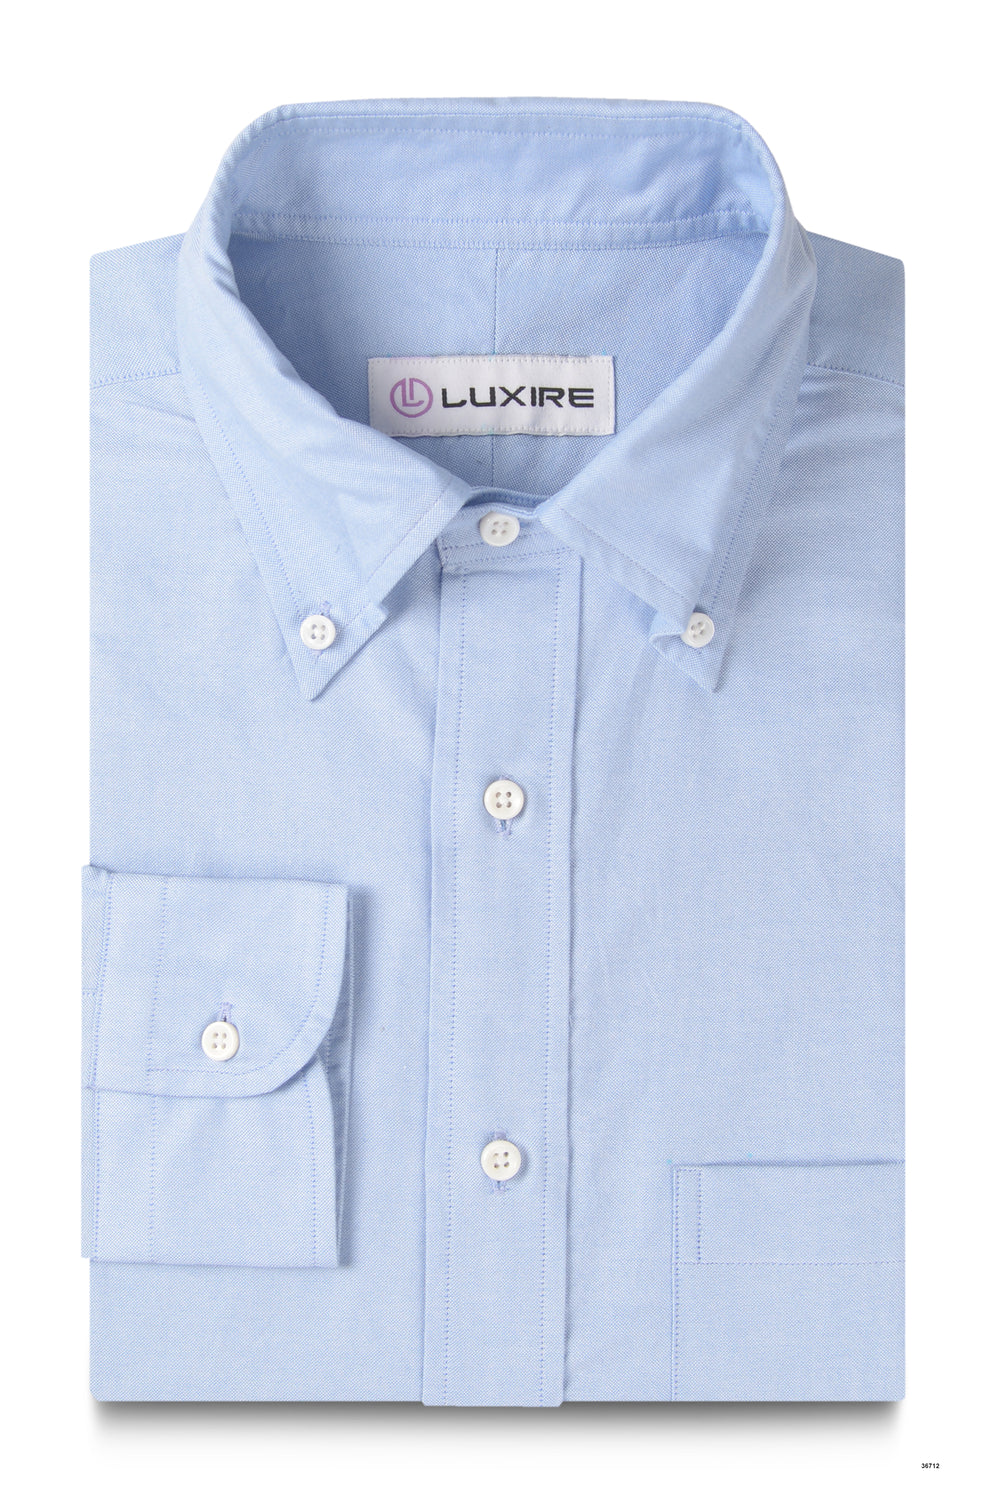 Classic Blue Summer Oxford